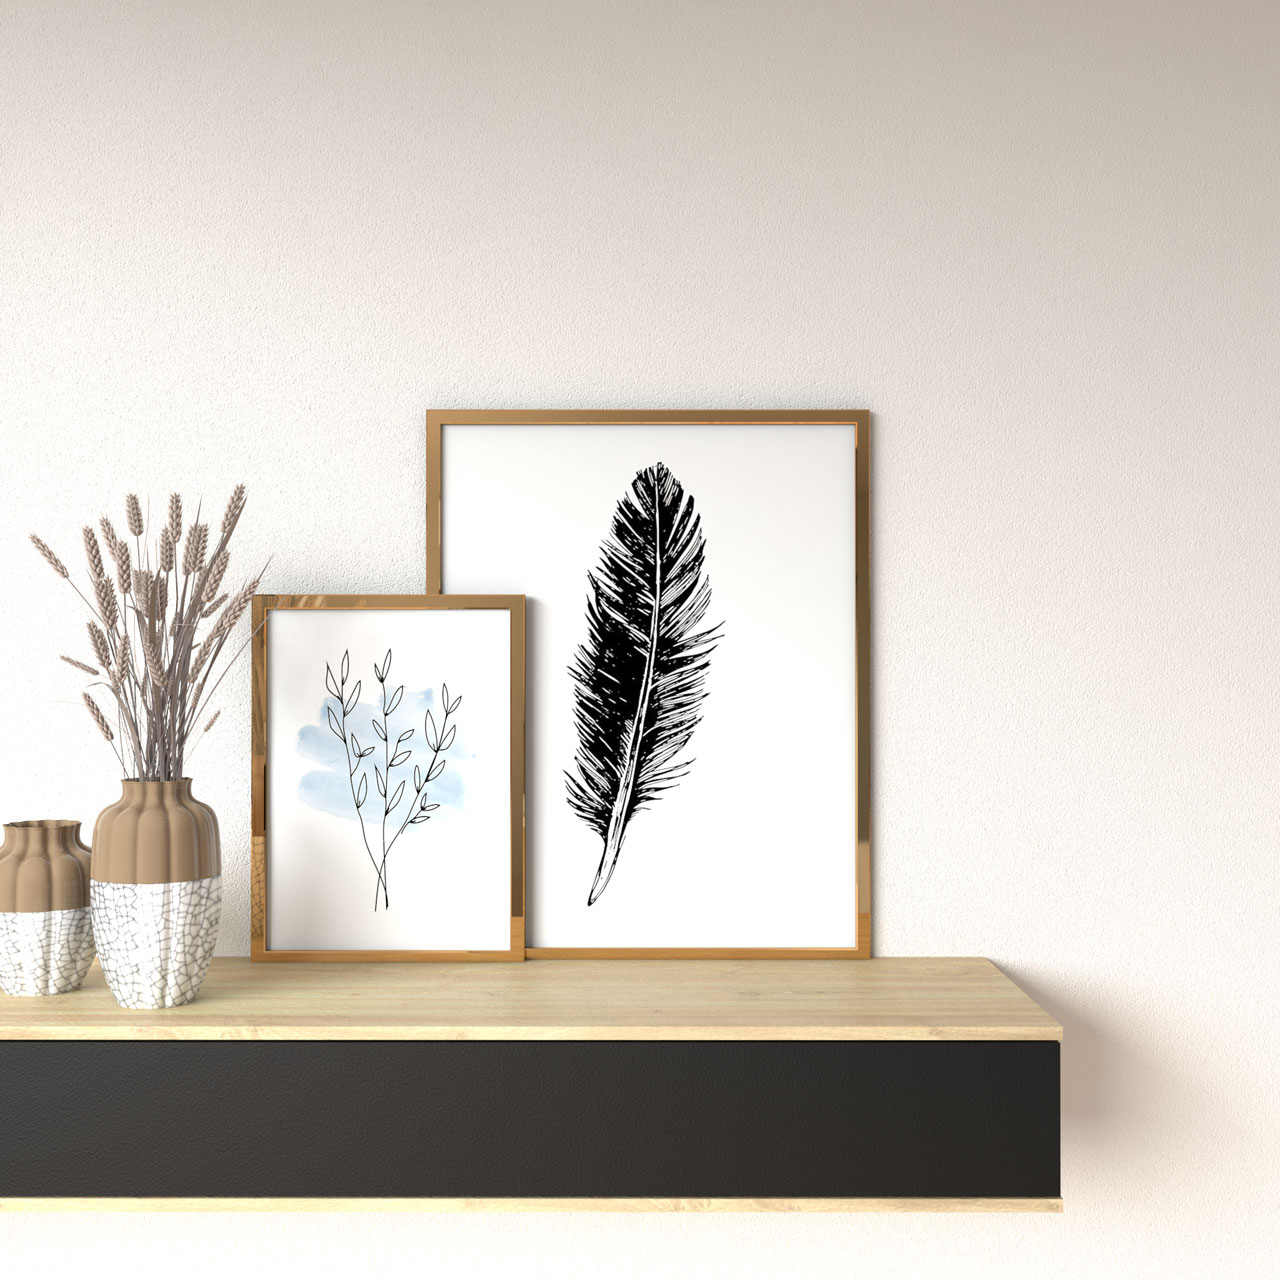 Ivory wall with gold frames